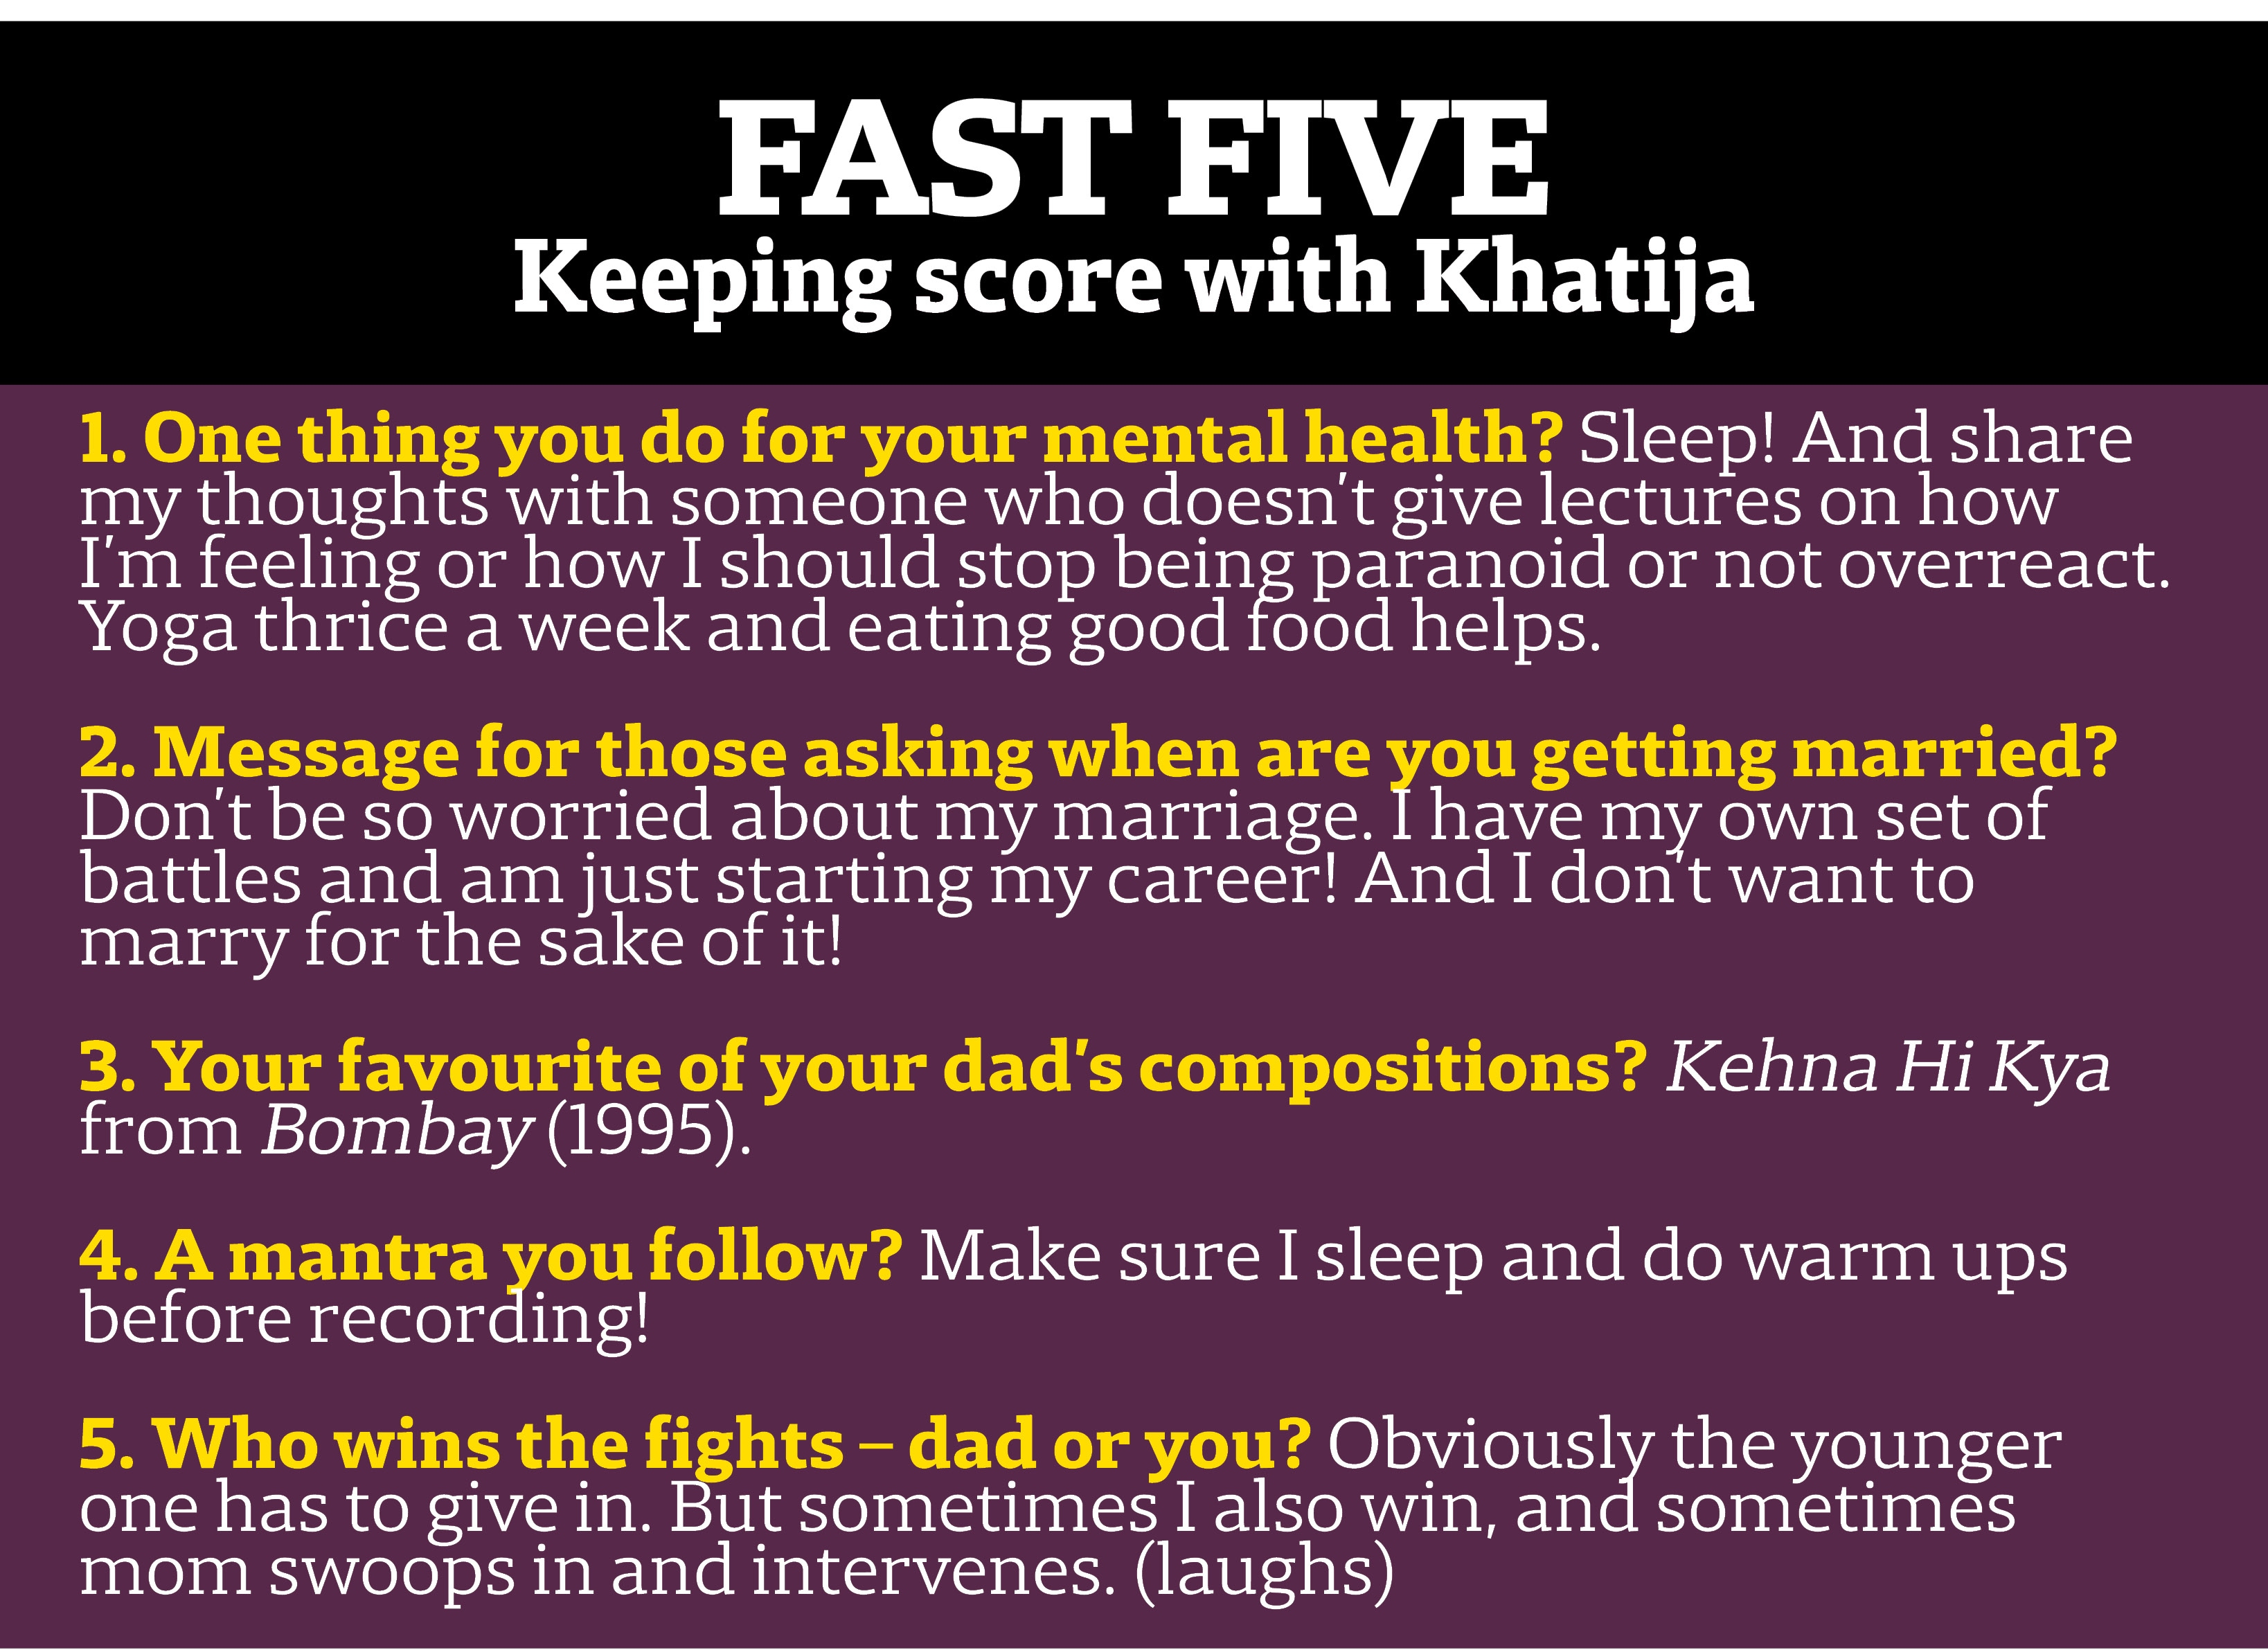 Quick questions with Khatija